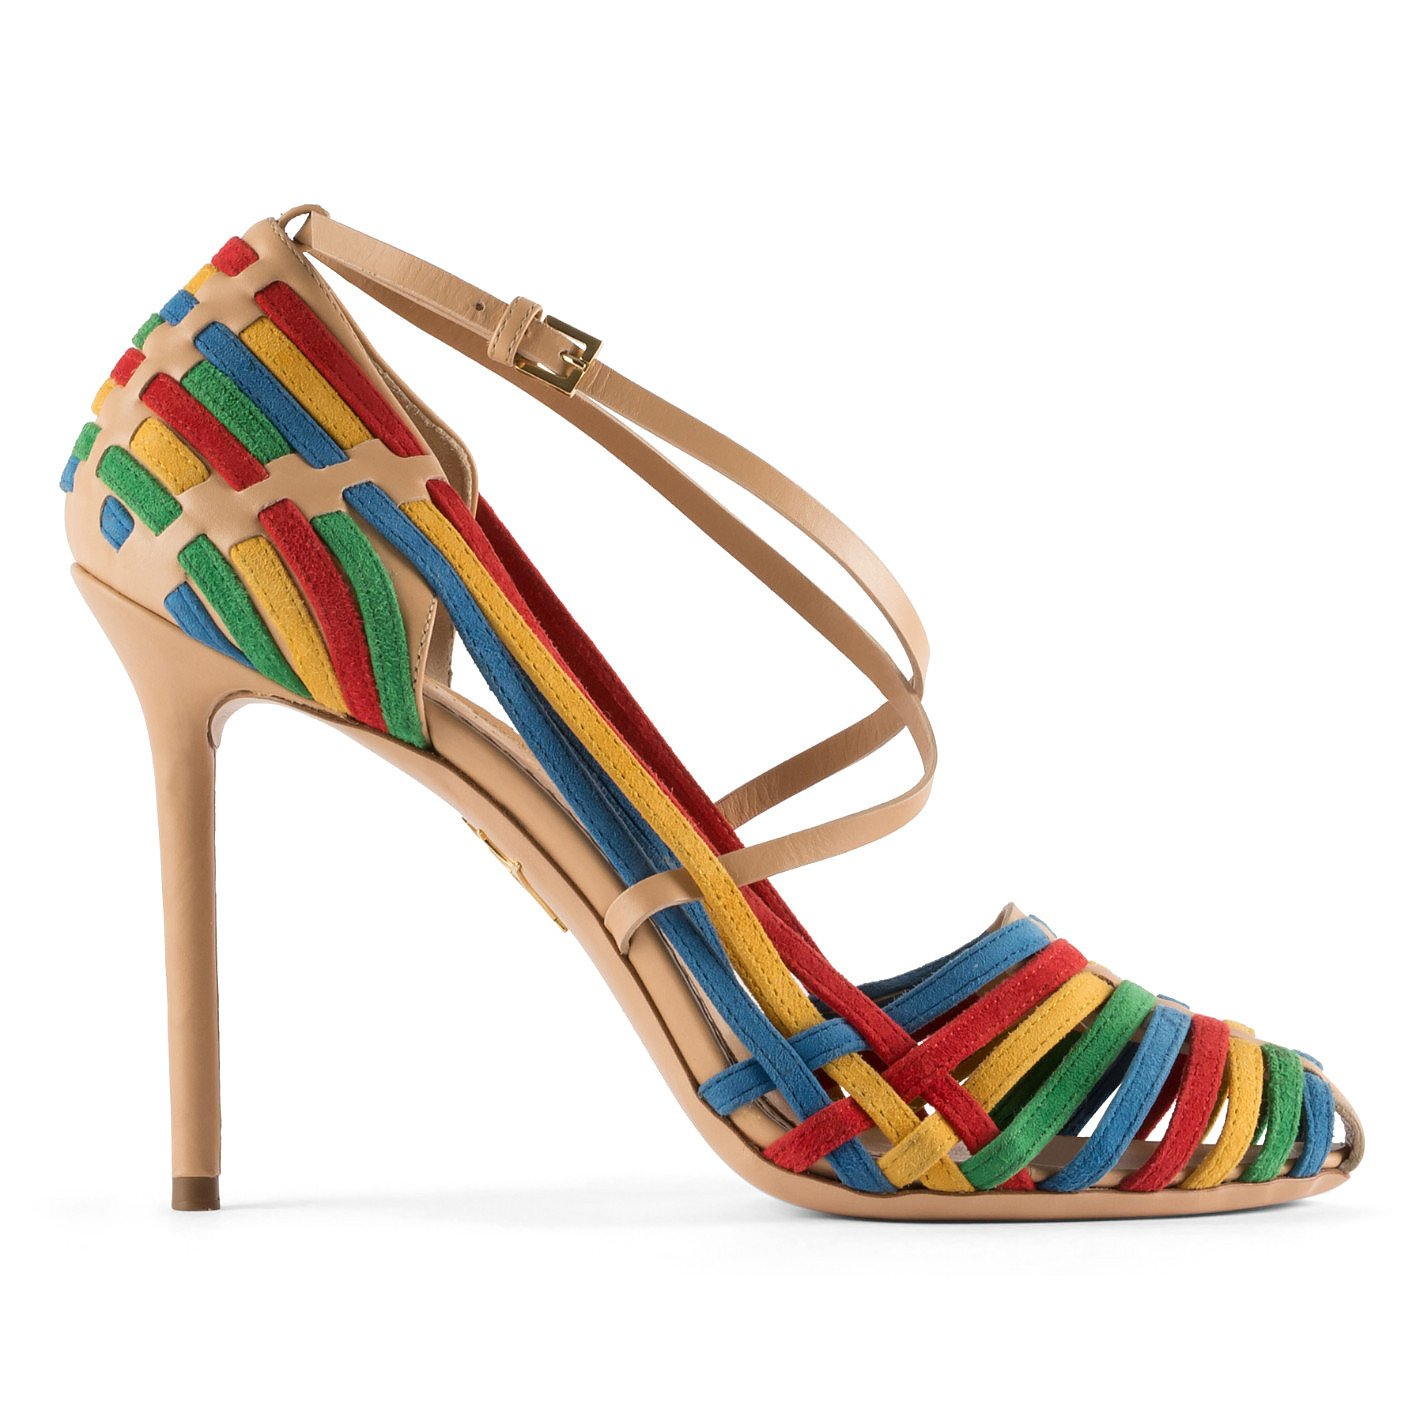 Charlotte Olympia Mariachi Leather & Suede Pumps